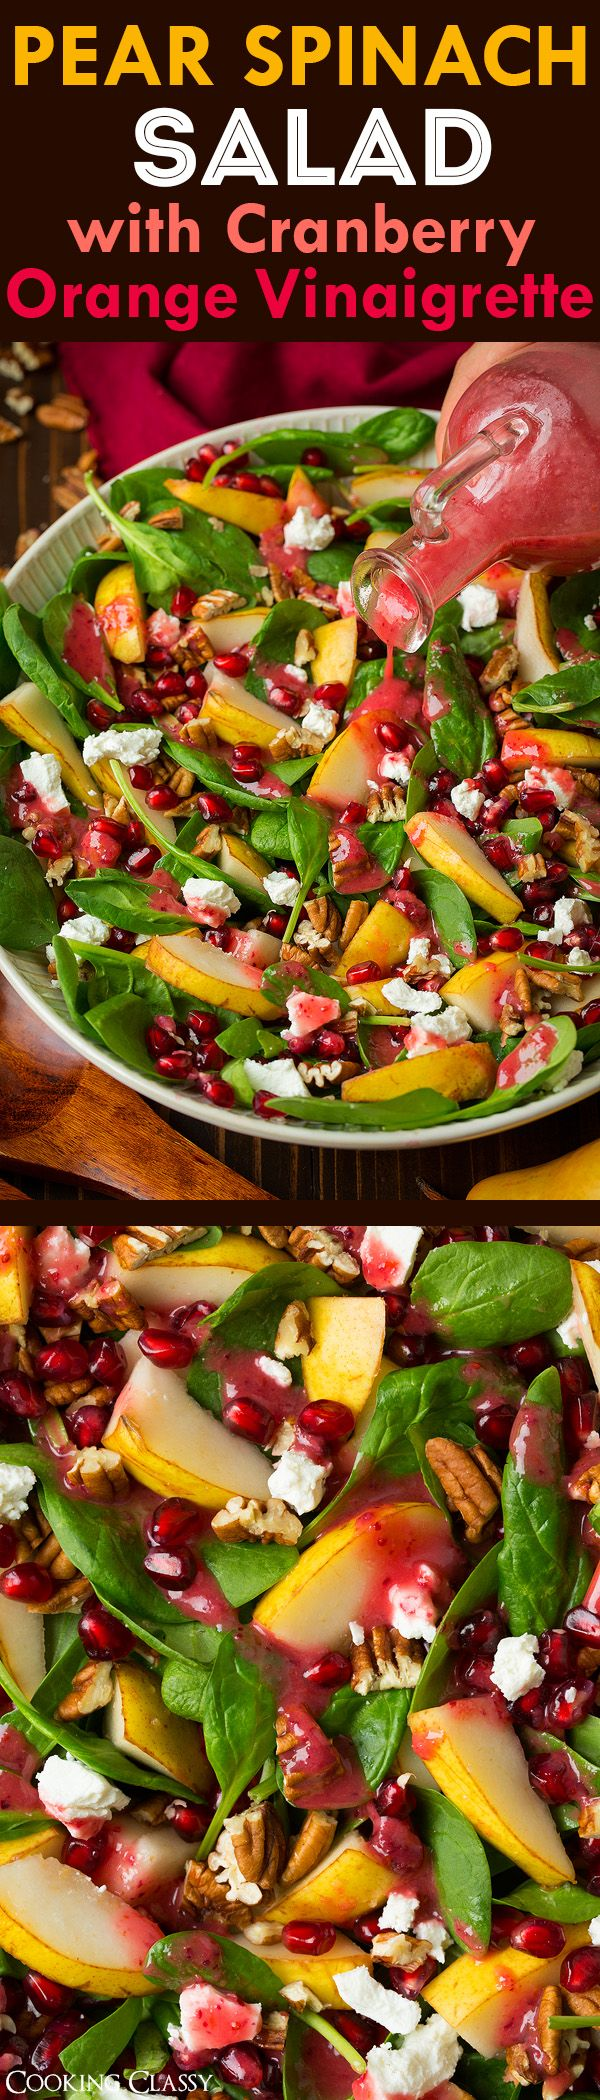 Pear Spinach Salad with Cranberry-Orange Vinaigrette - Cooking Classy